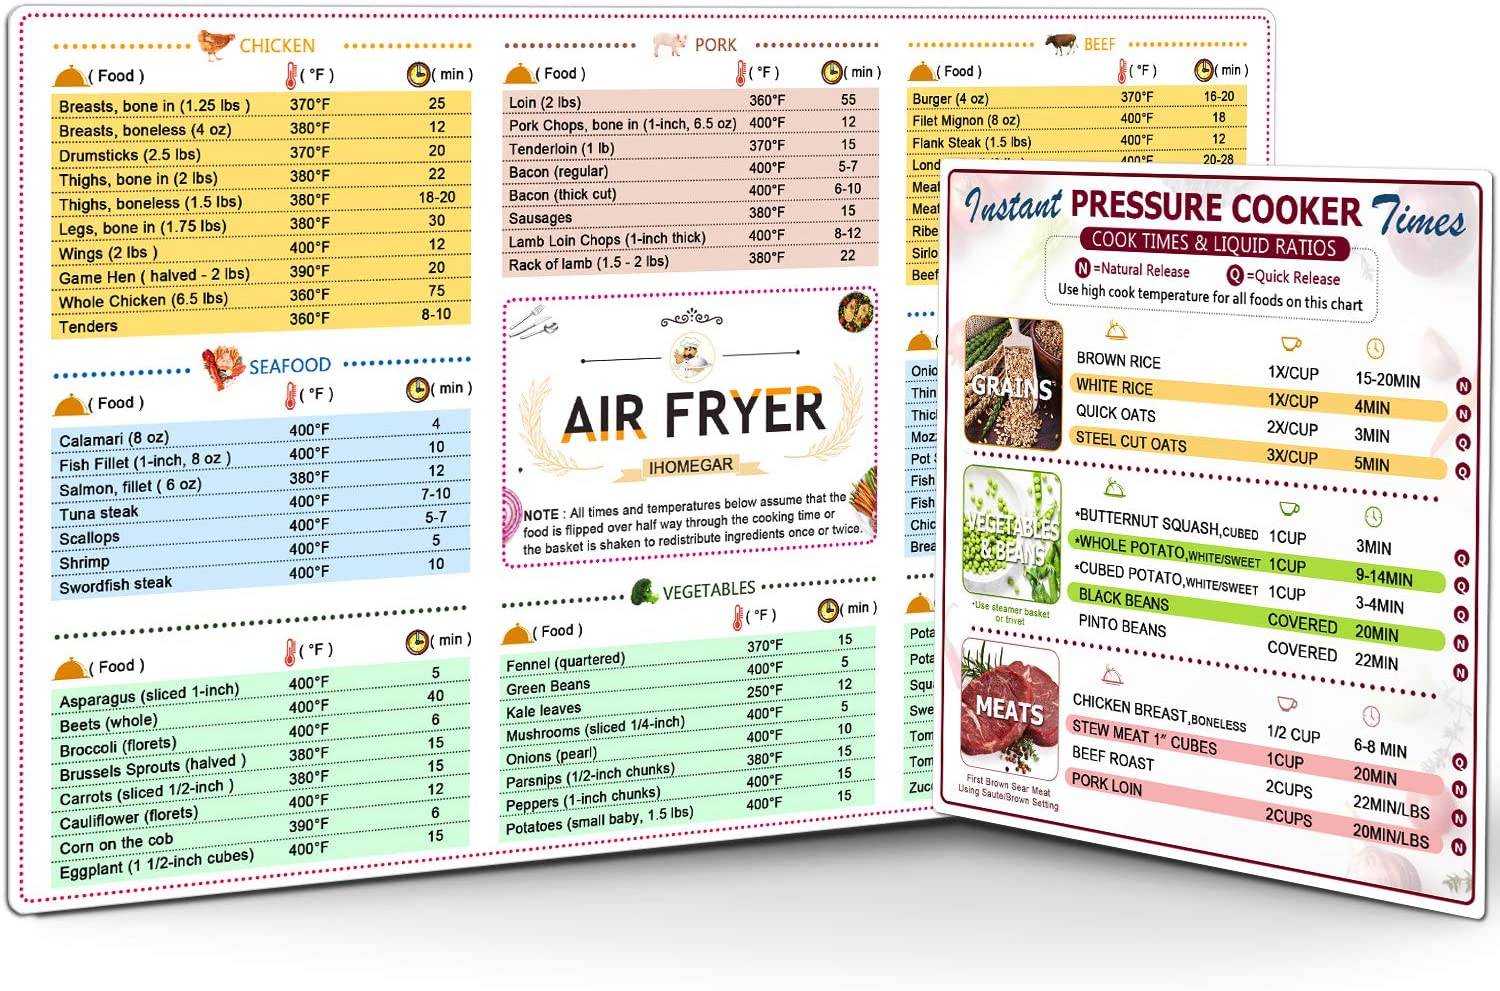 Air Fryer with Instant Pot Cheat Sheet Magnet Set,Pressure Cooker Accessories Electric Pressure Cooker Times Cookbook Chart Quick Reference Guide ,2 Pack